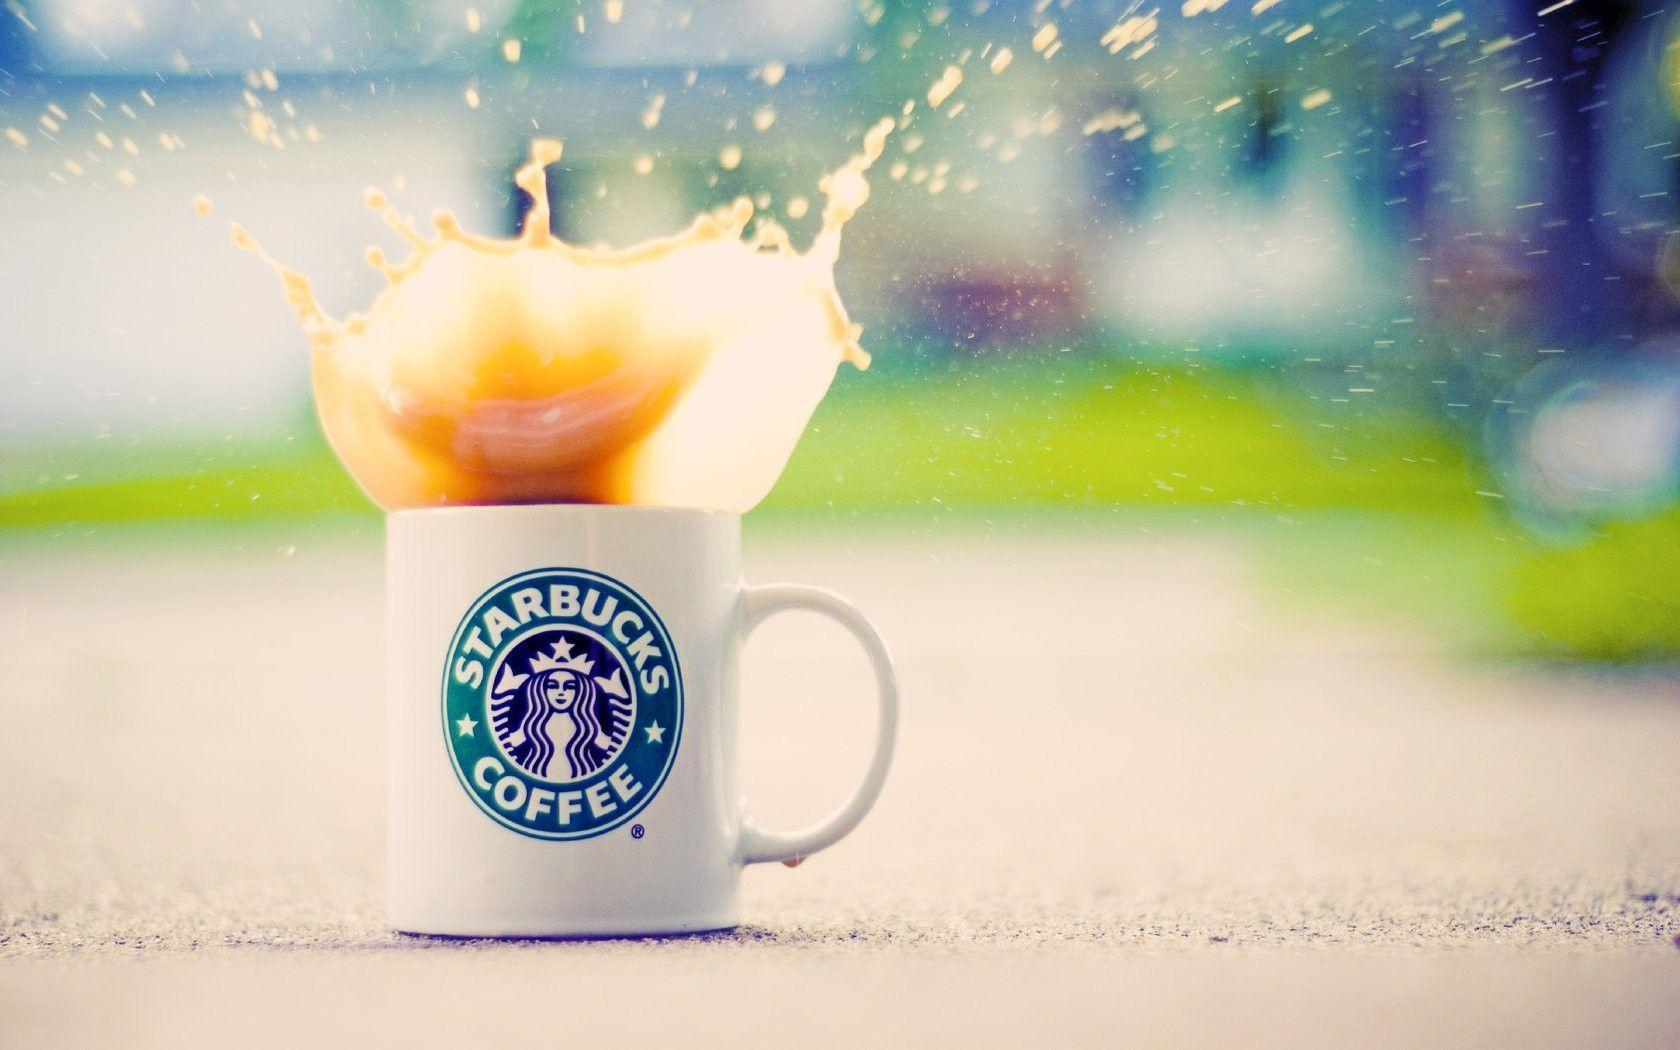 Starbucks Coffee HD Desktop Wallpaper #4275 #16057 Wallpaper | SpotIMG